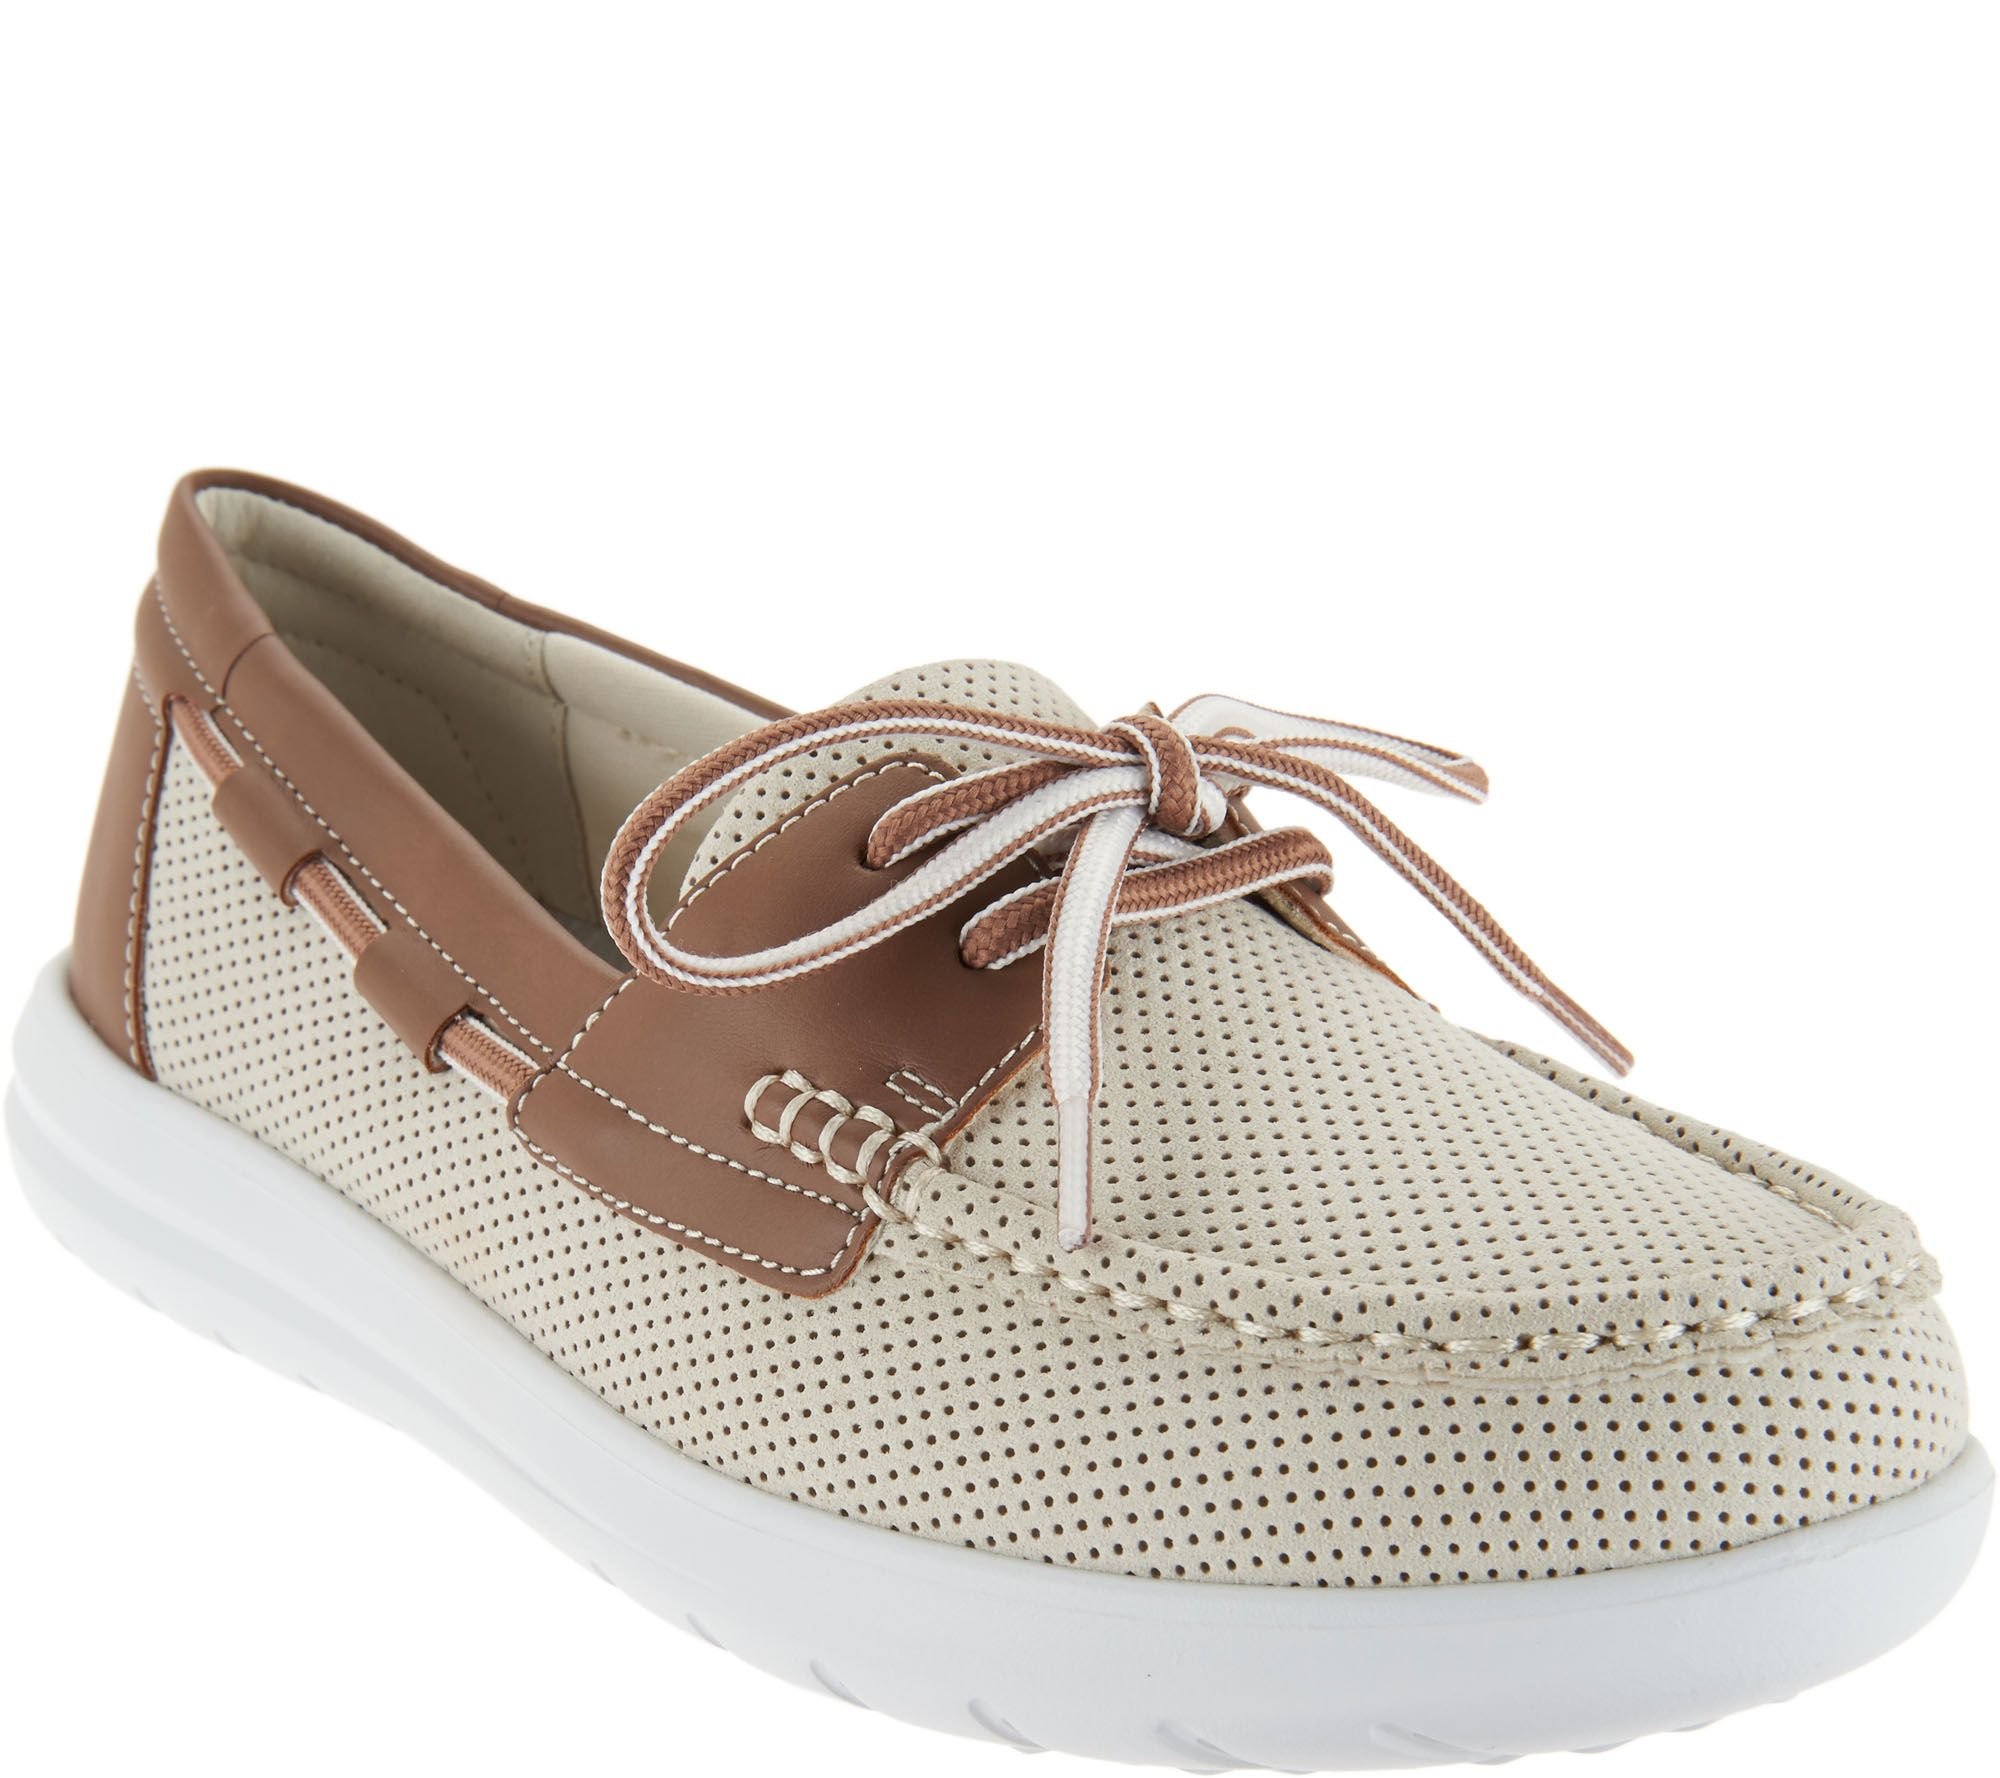 3b3748bc71ee CLOUDSTEPPERS by Clarks Boat Shoes - Jocolin Vista - Page 1 — QVC.com